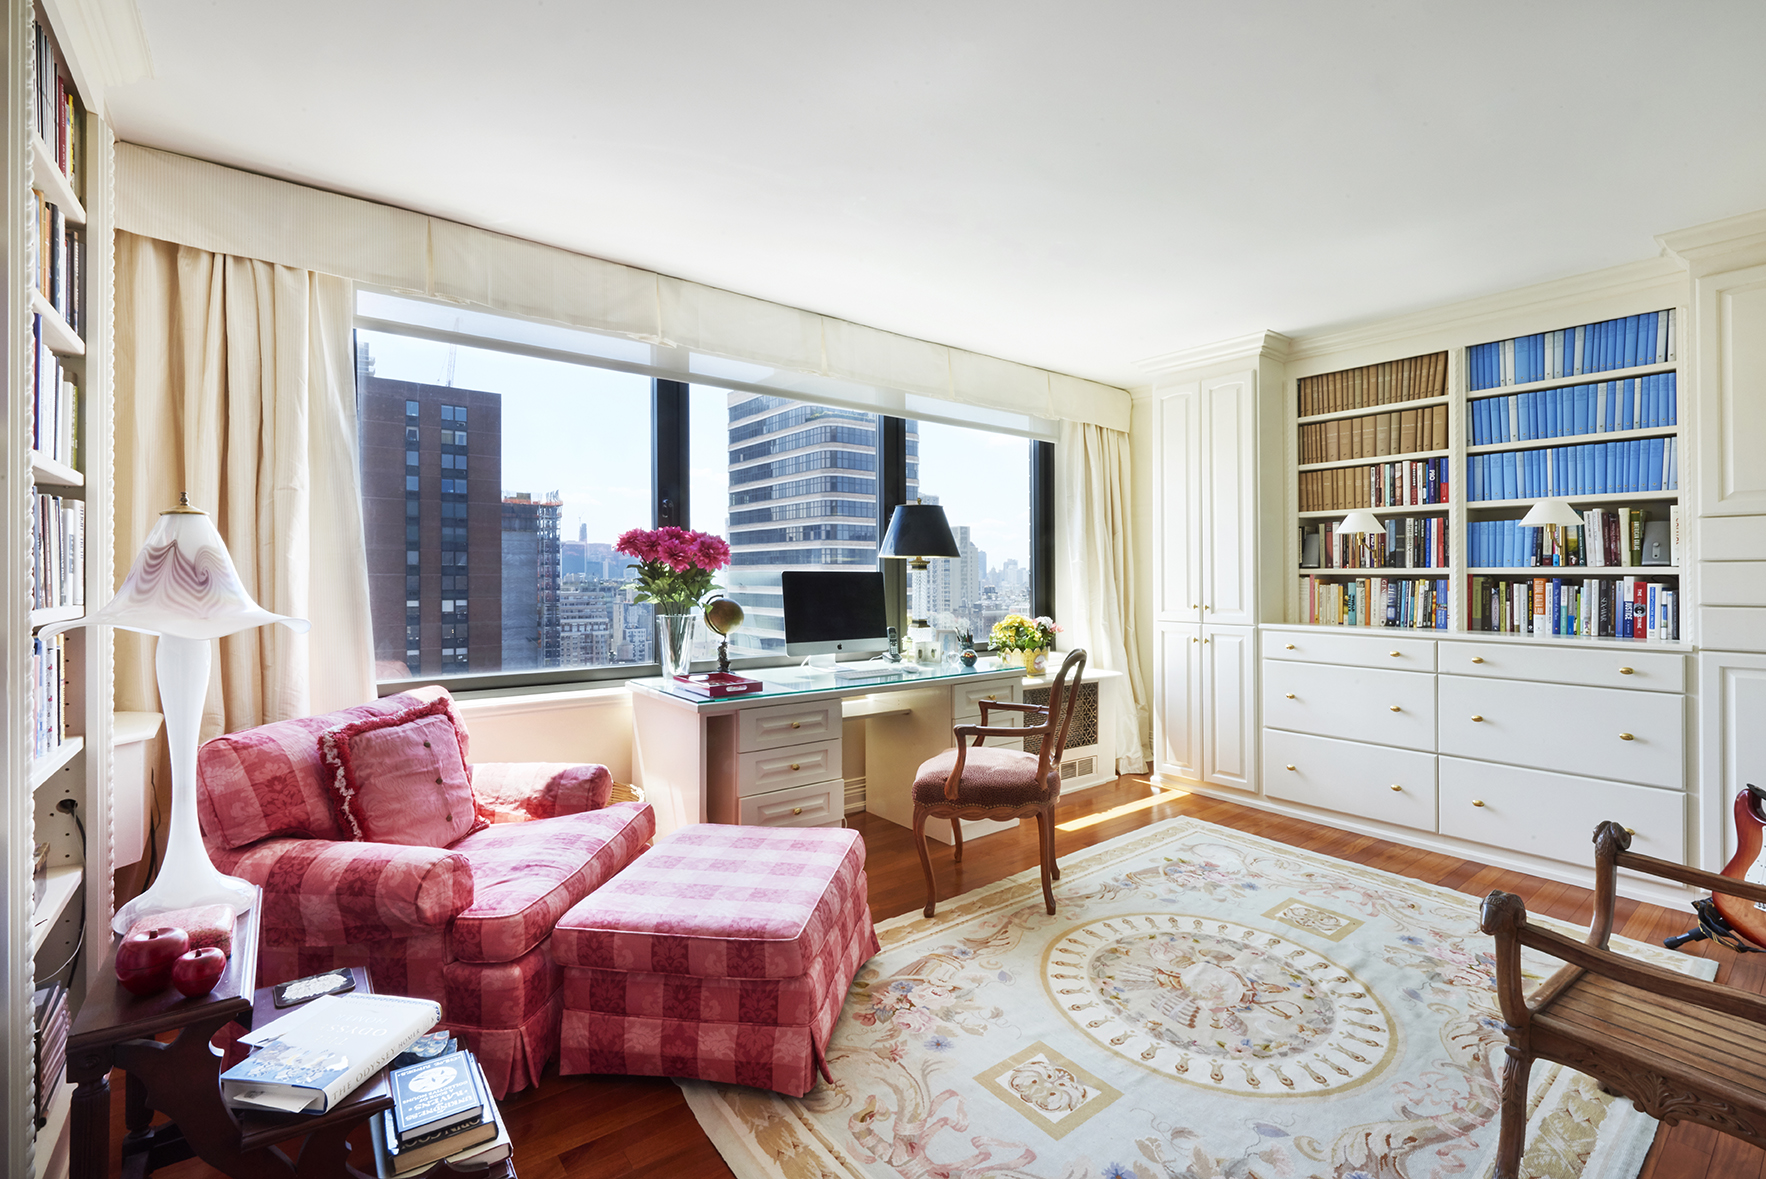 Camilla Tange Home : Third avenue jk a luxury home for sale in new york Нью